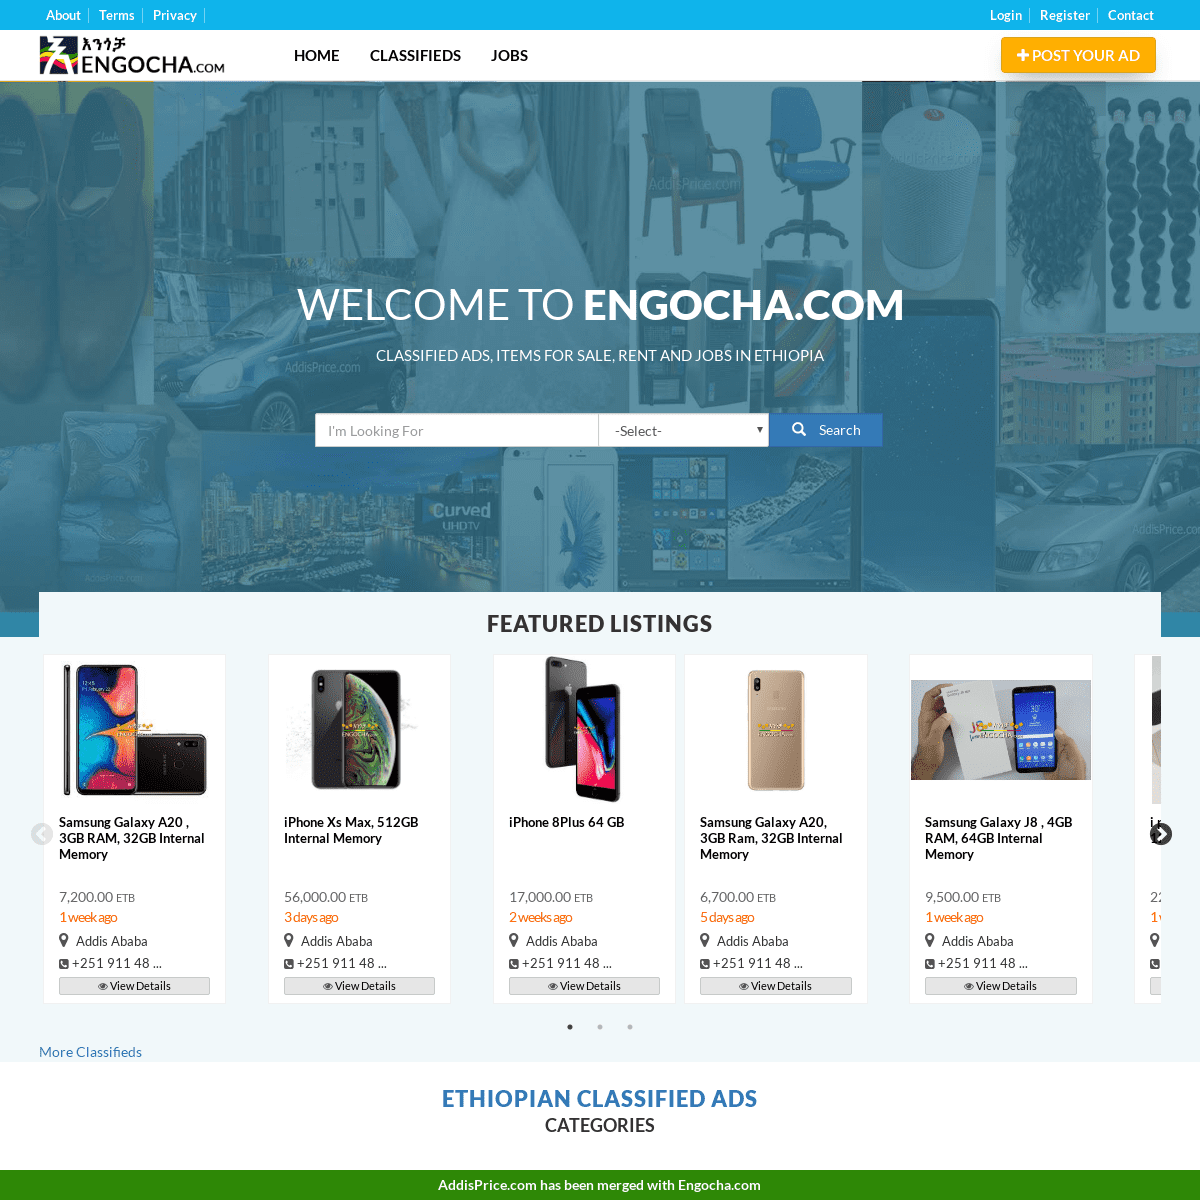 Engocha.com - Ethiopian Classified Ads, Jobs Vacancies, Online Shopping and News